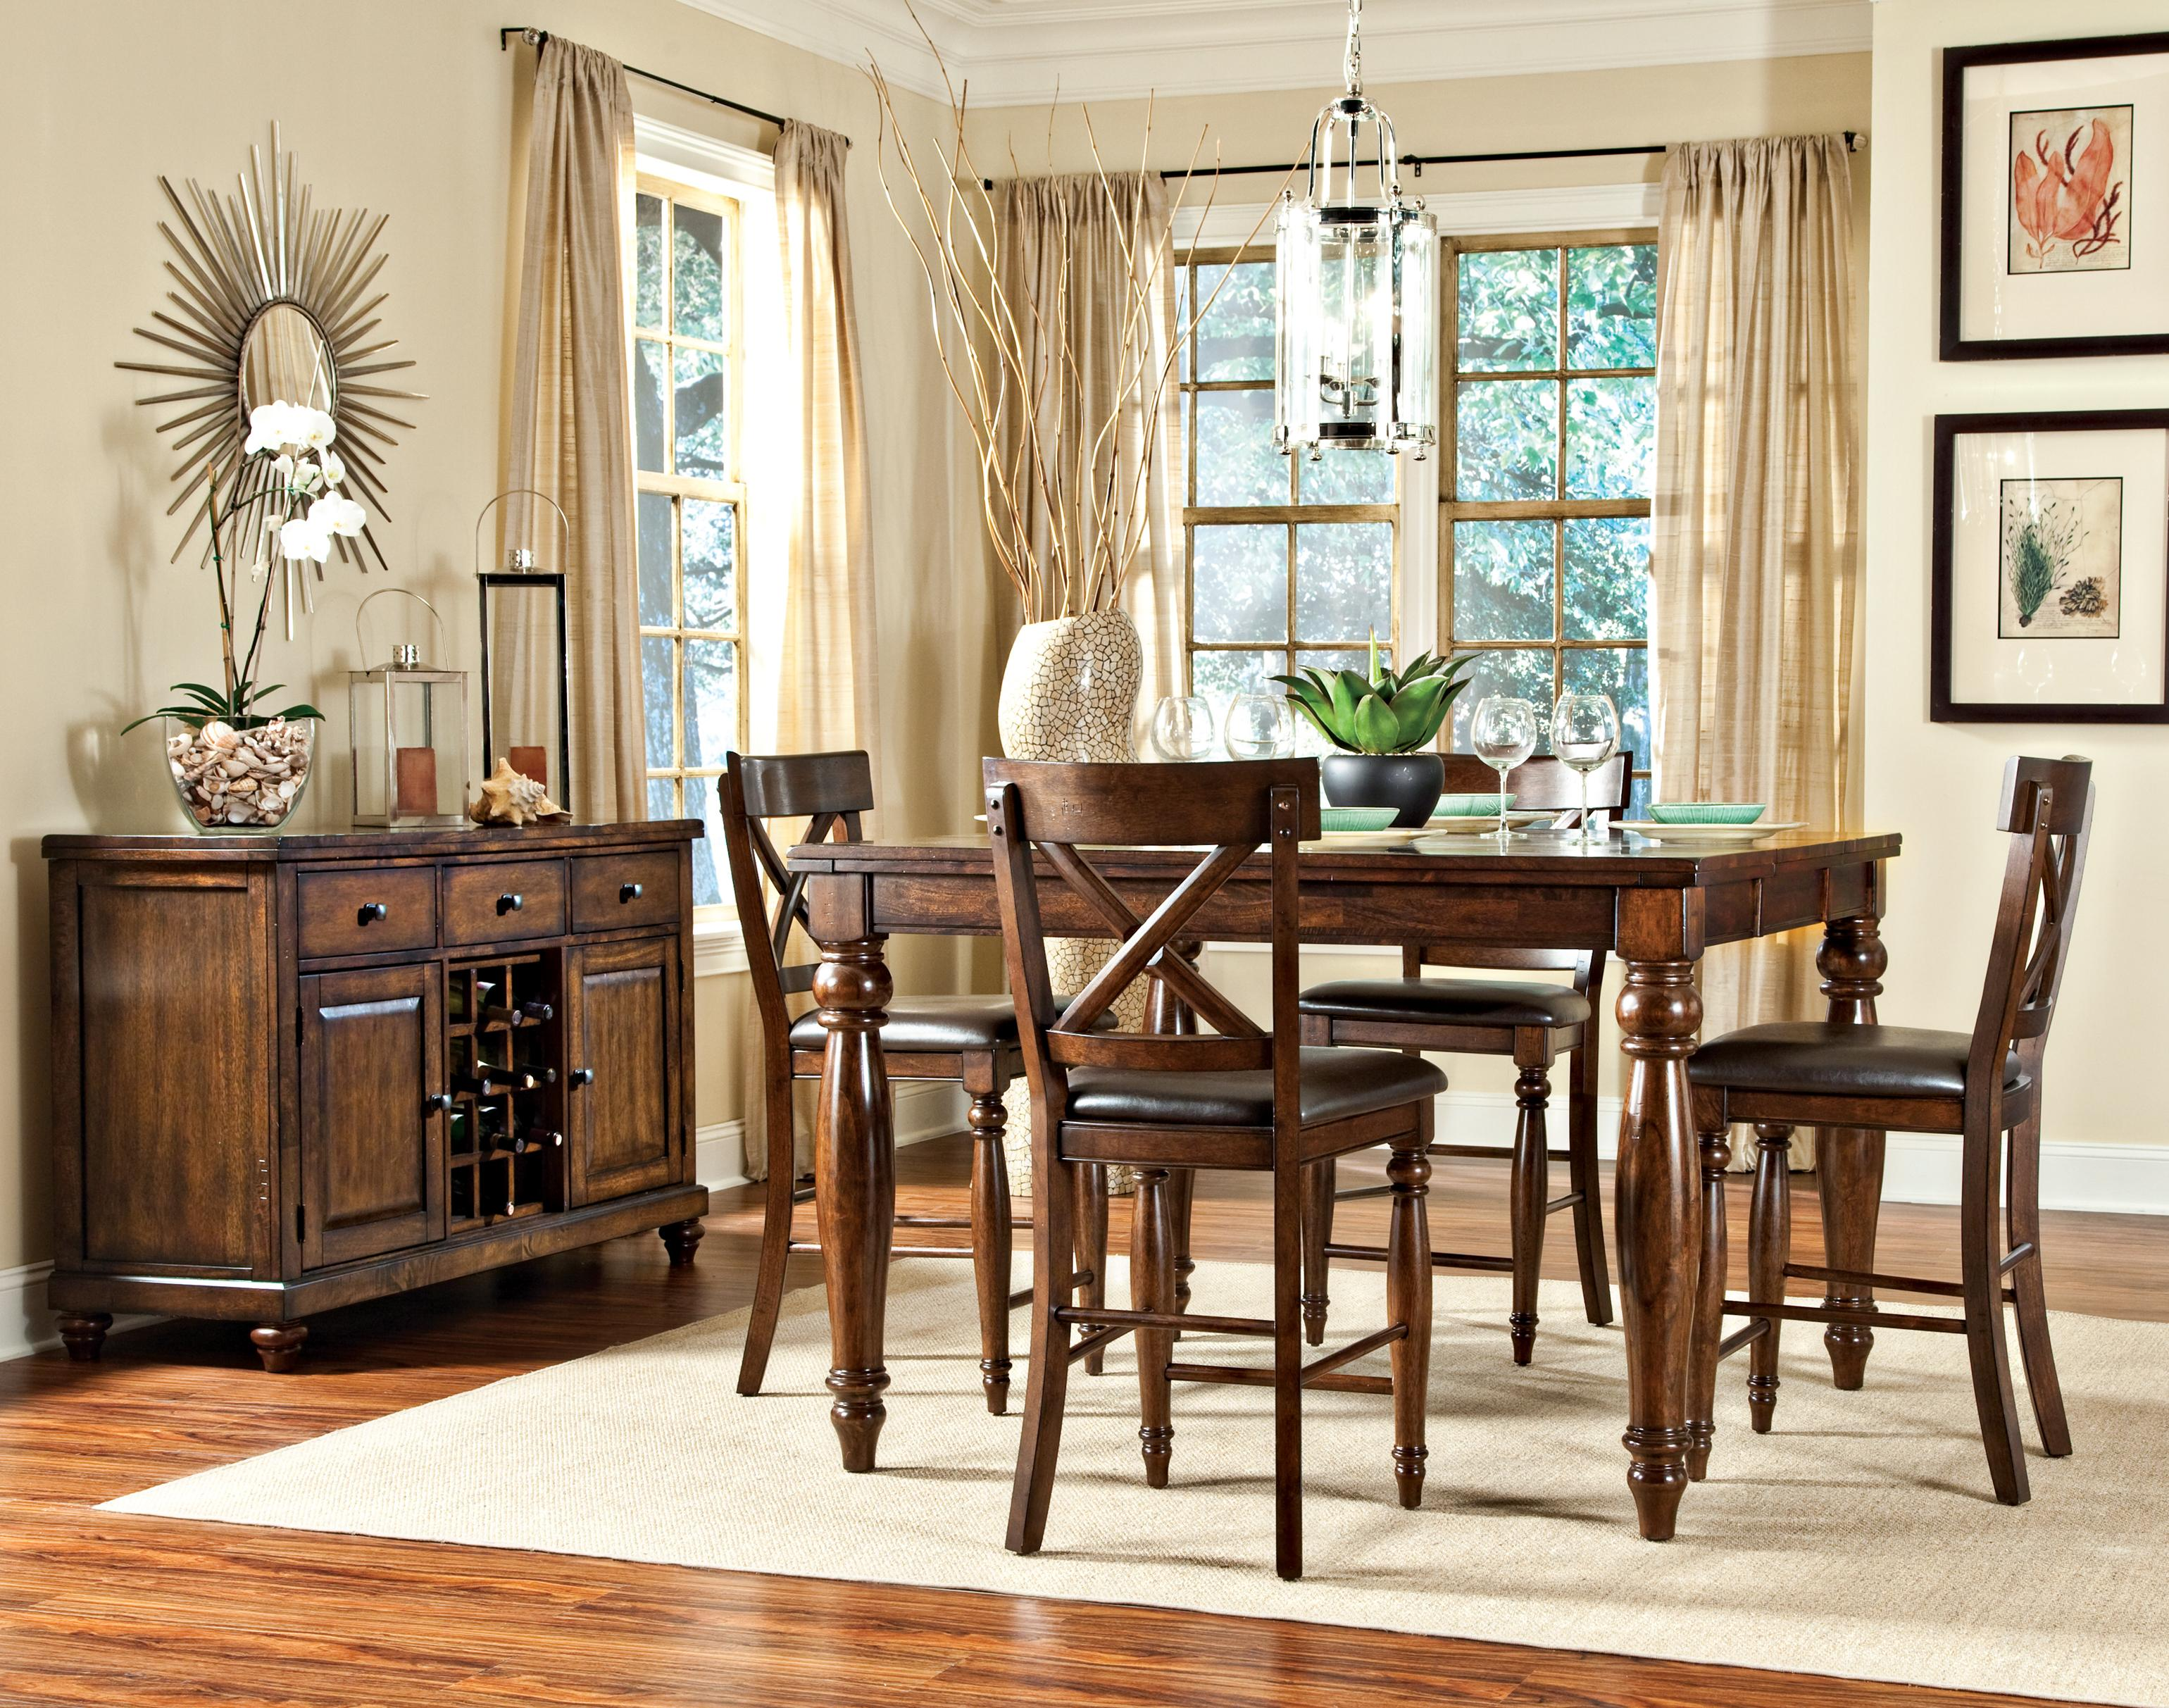 Intercon Kingston Five Piece Gathering Table and Stool Set | Fisher Home Furnishings | Pub Table and Stool Set & Intercon Kingston Five Piece Gathering Table and Stool Set | Fisher ...